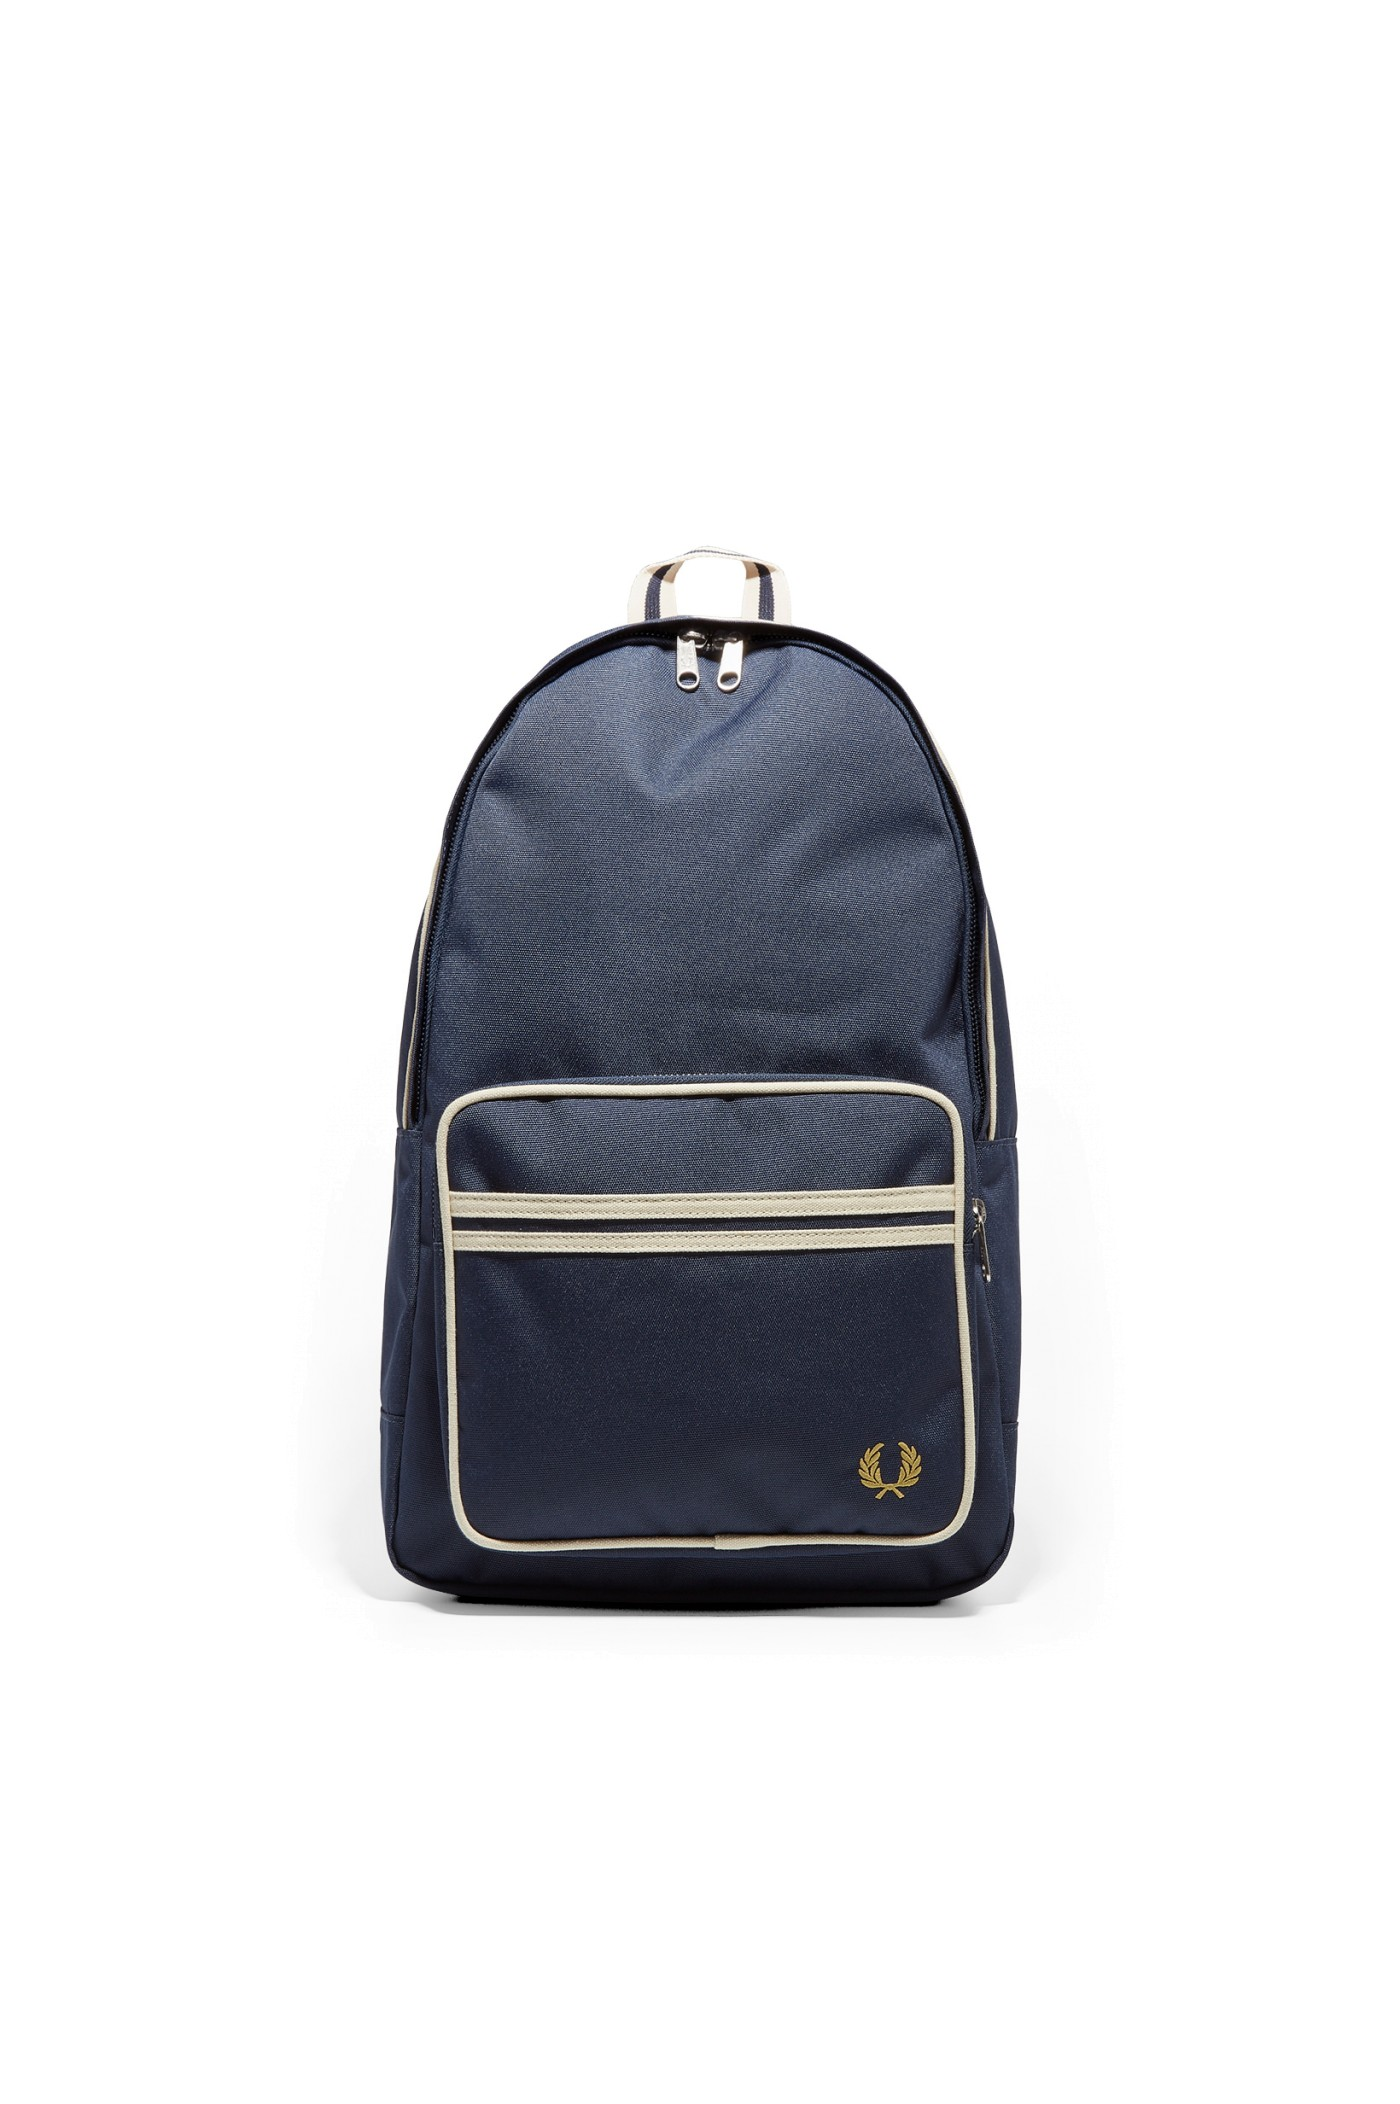 fred perry laurel wreath canvas tote bag navy fred perry canvas tote ... 49b539b4bfae7